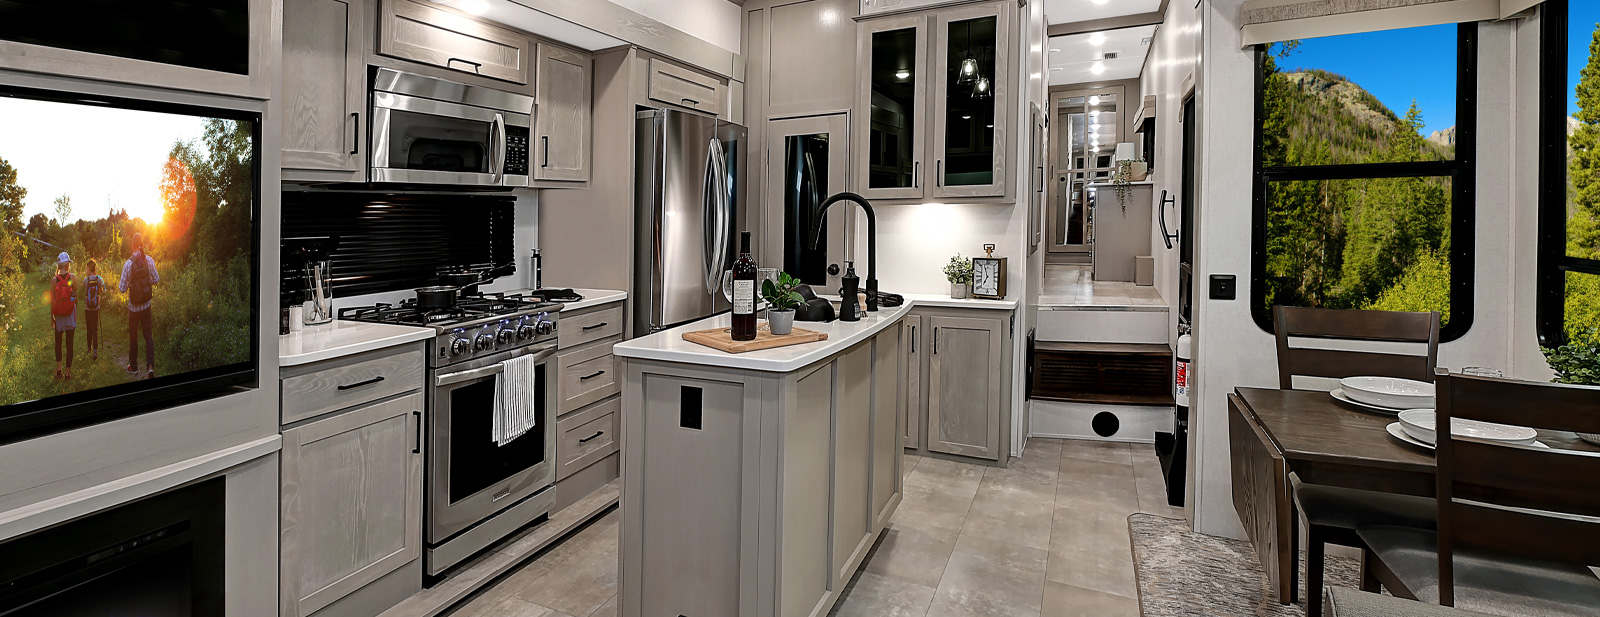 Columbus | Palomino RV - Manufacturer of Quality RVs since 1968